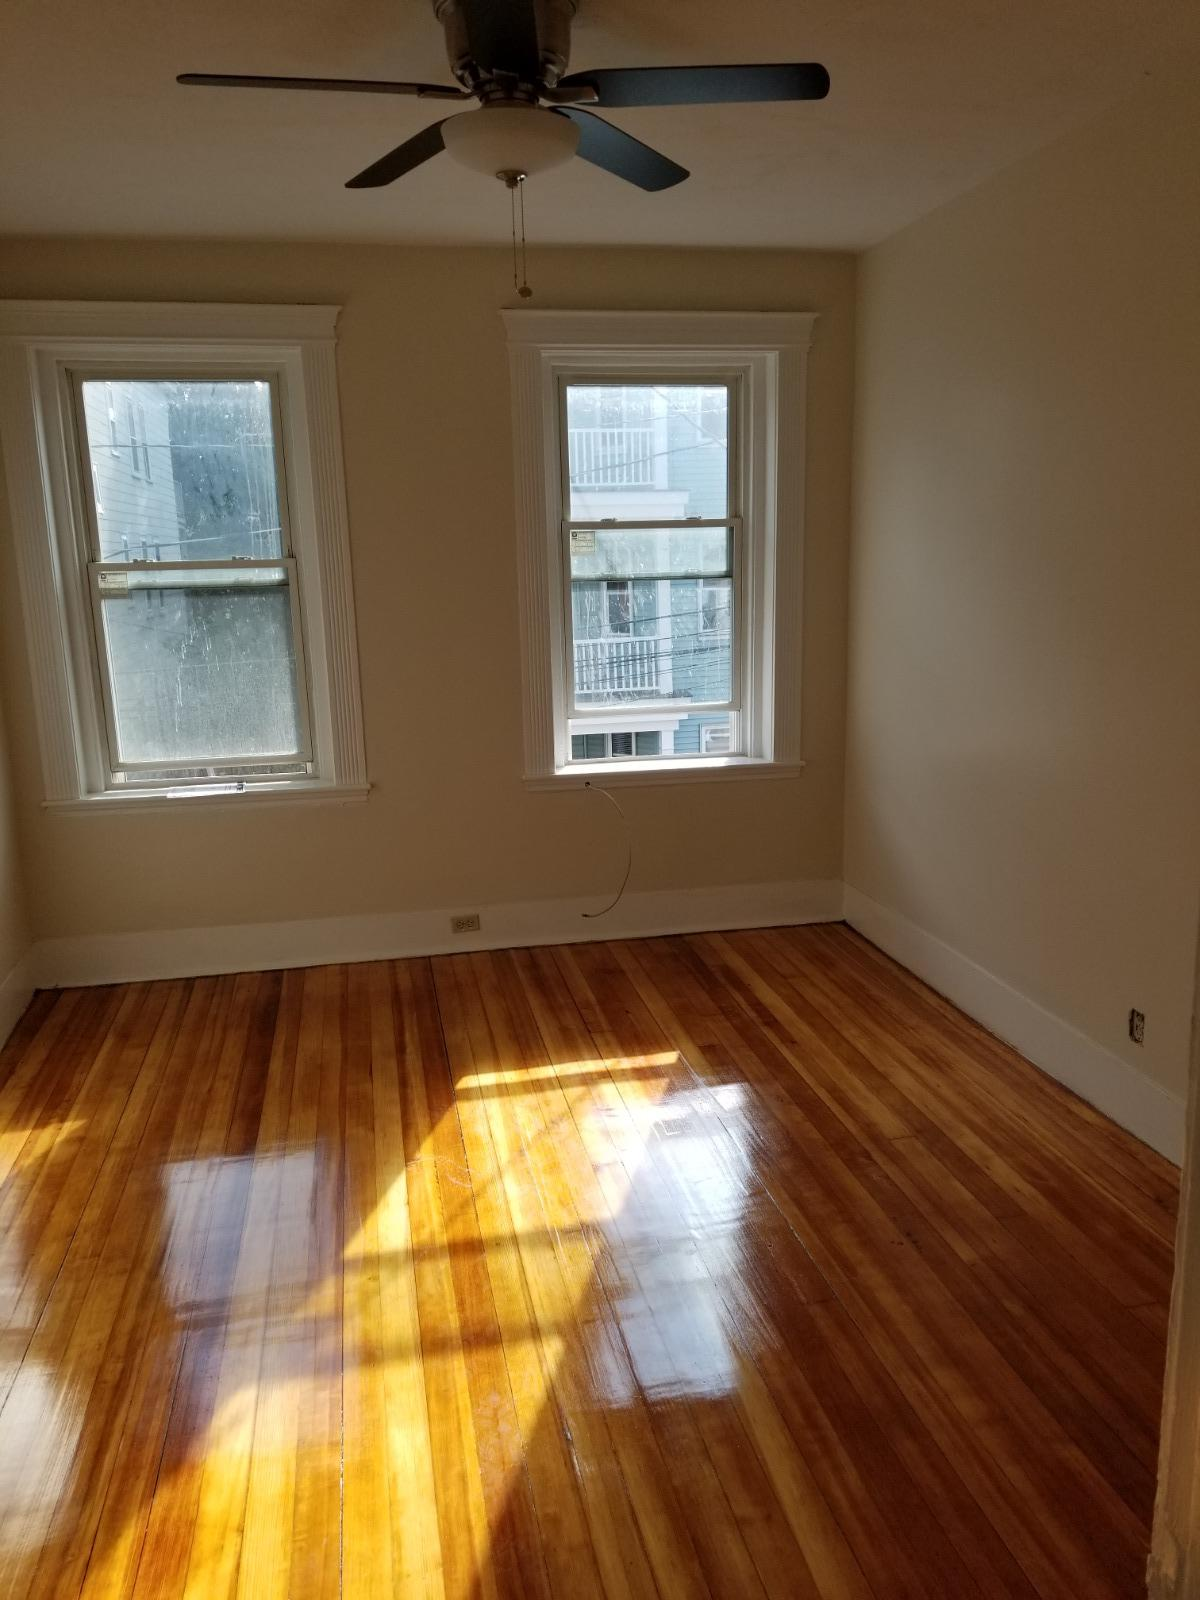 5 - 3 BEDROOM APARTMENT FOR, ASAP MOVE IN!!